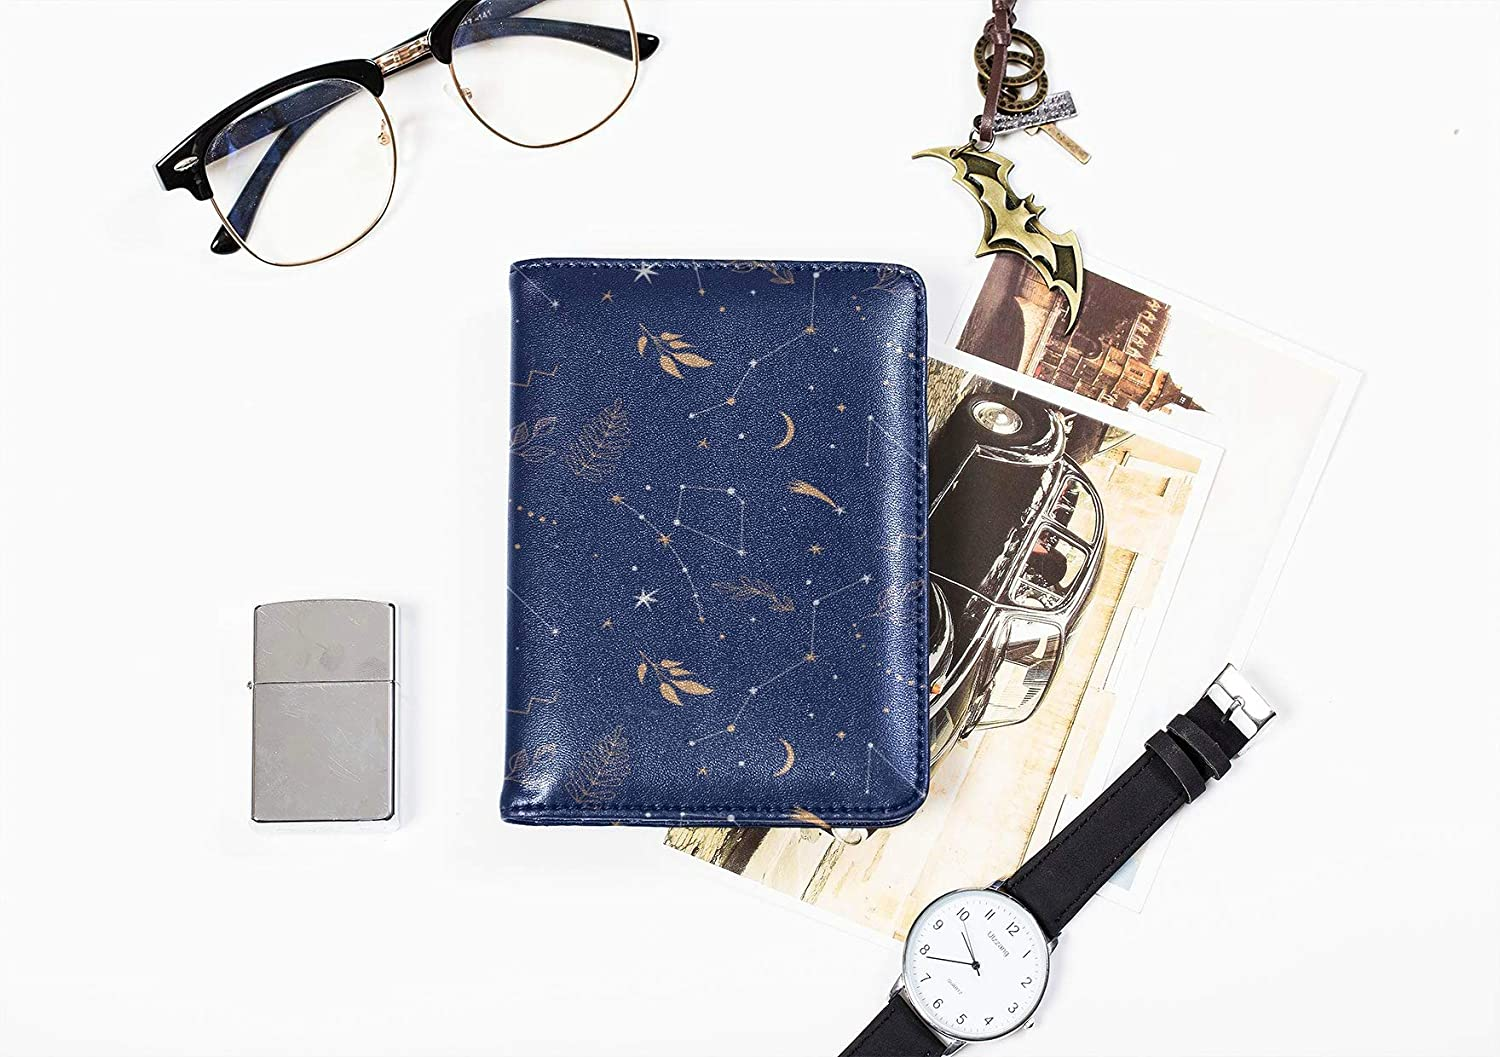 Small Passport Cover Dreamy Constellation Starry Sky Passport Covers Women Multi Purpose Print My Passport Case Travel Wallets For Unisex 5.51x4.37 Inch